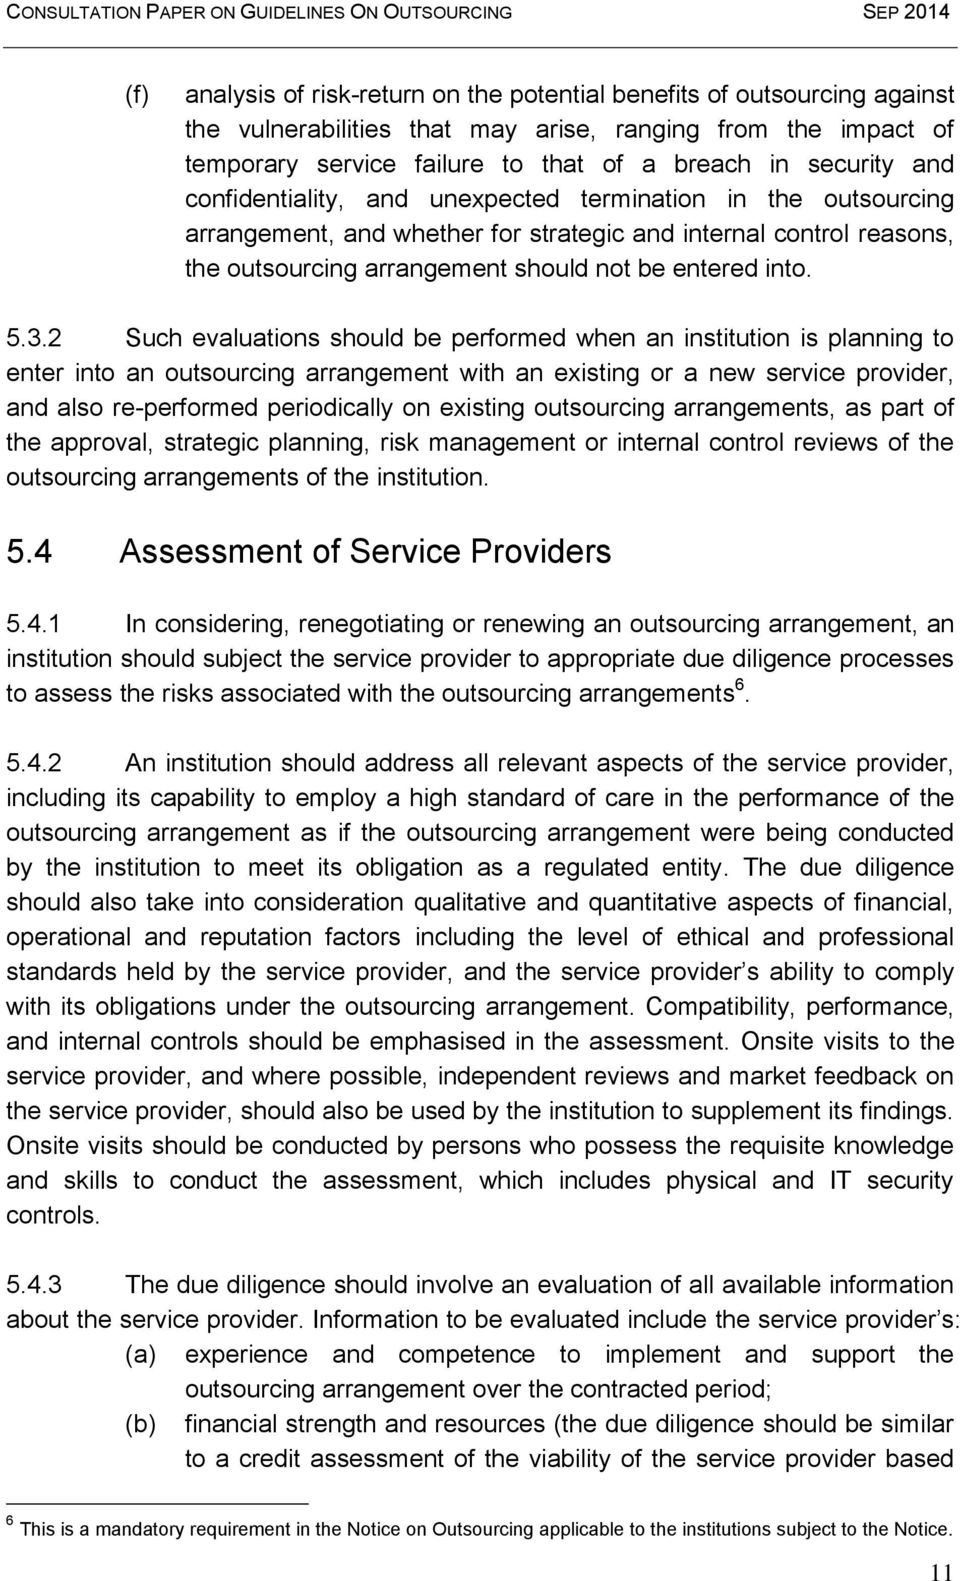 2 Such evaluations should be performed when an institution is planning to enter into an outsourcing arrangement with an existing or a new service provider, and also re-performed periodically on